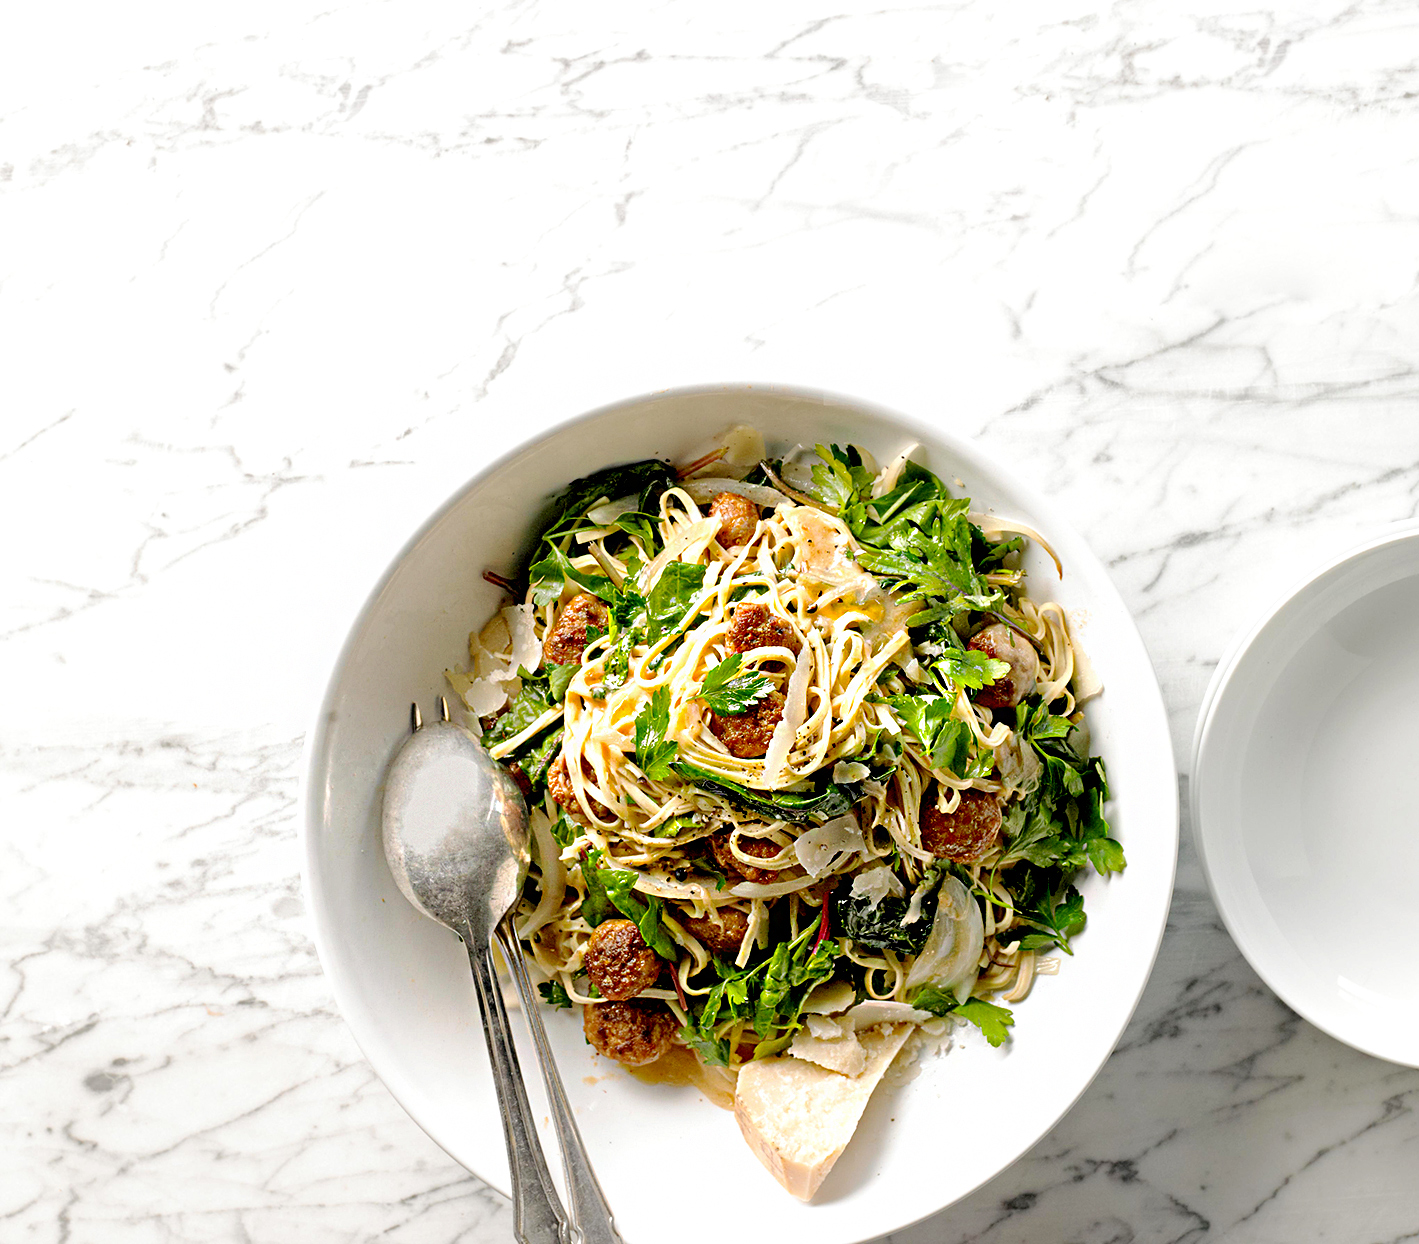 Linguine with Sausage, Greens, Eggs, and Pan Sauce